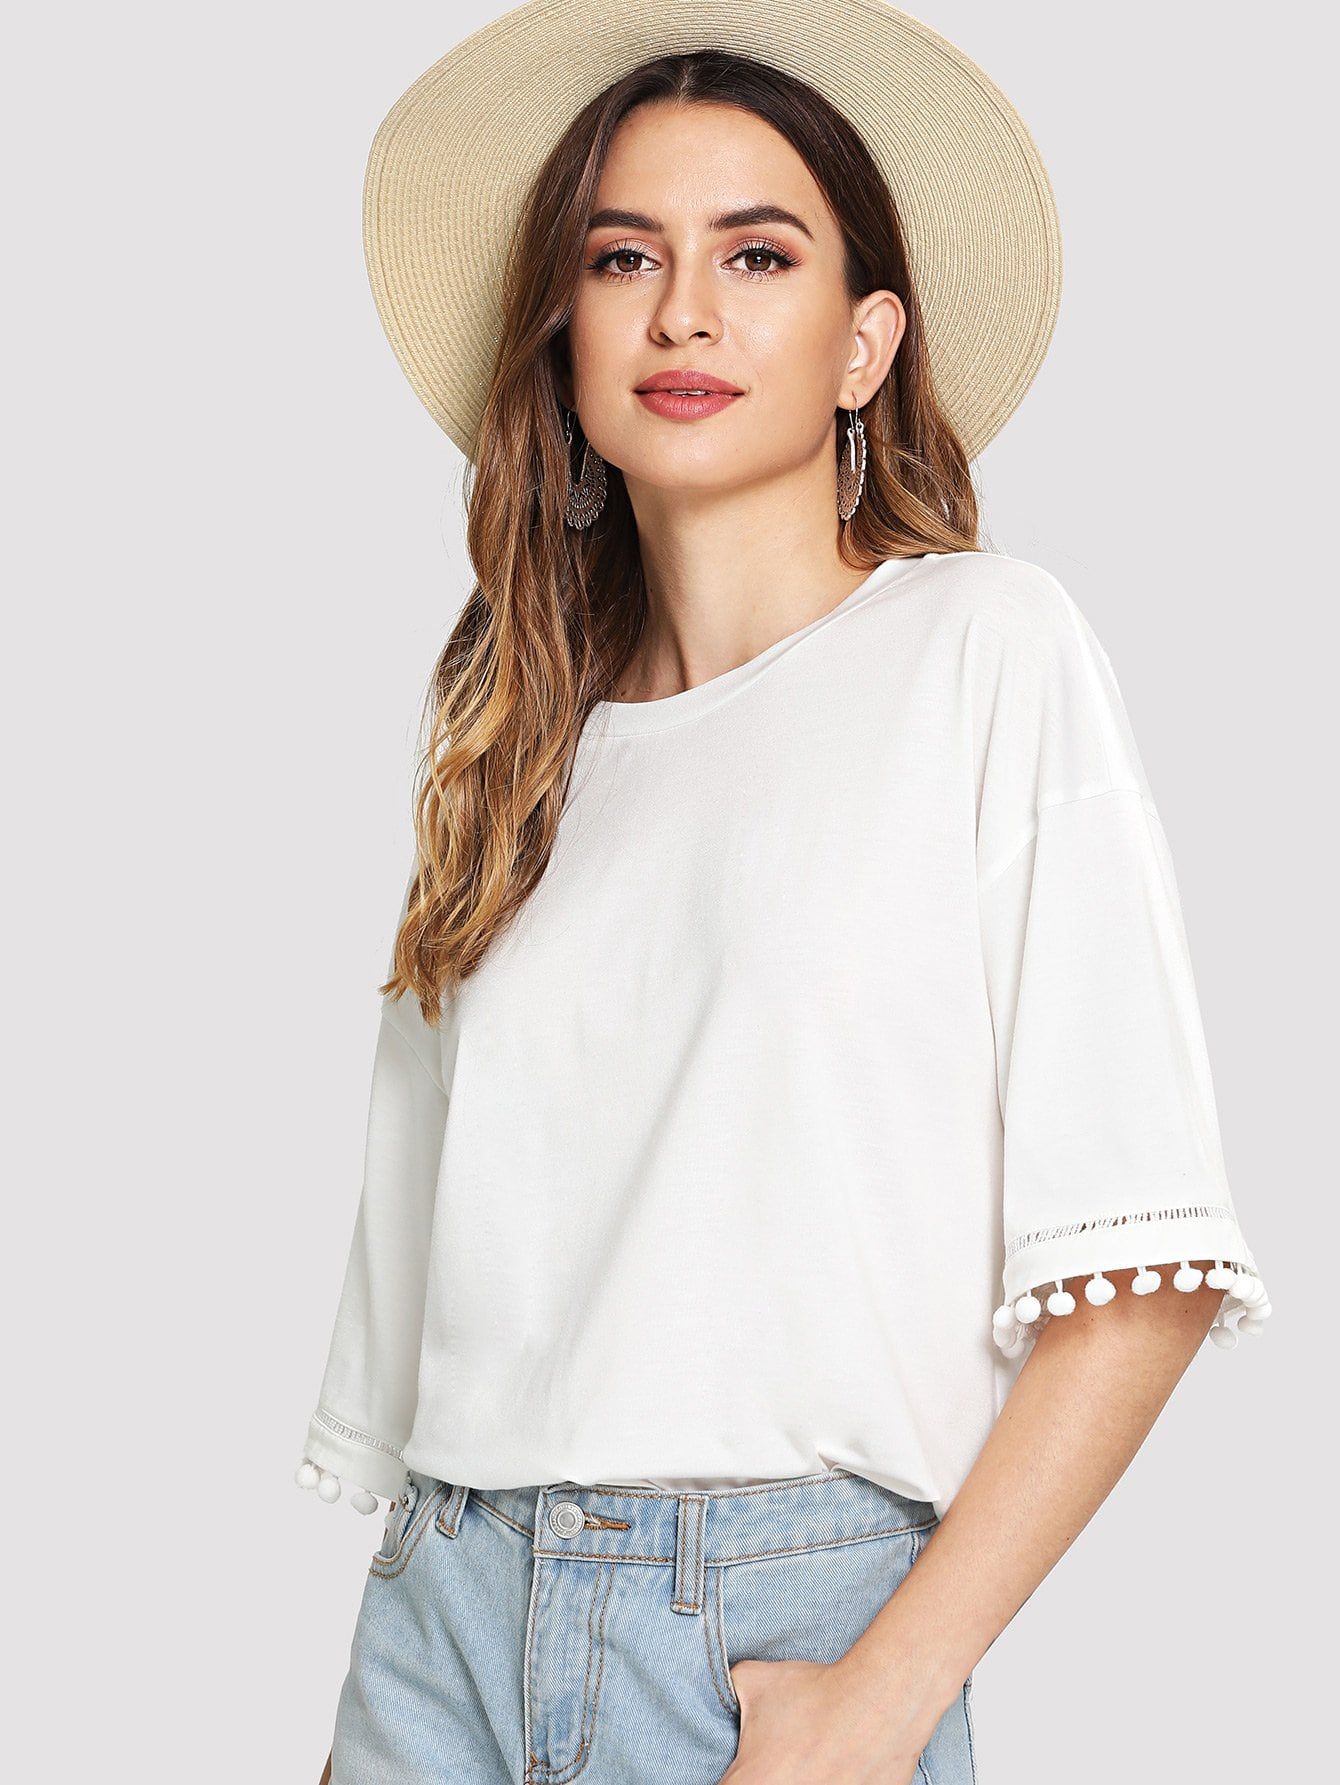 Drop Shoulder Pom Pom Trim Tee open shoulder pom pom trim top